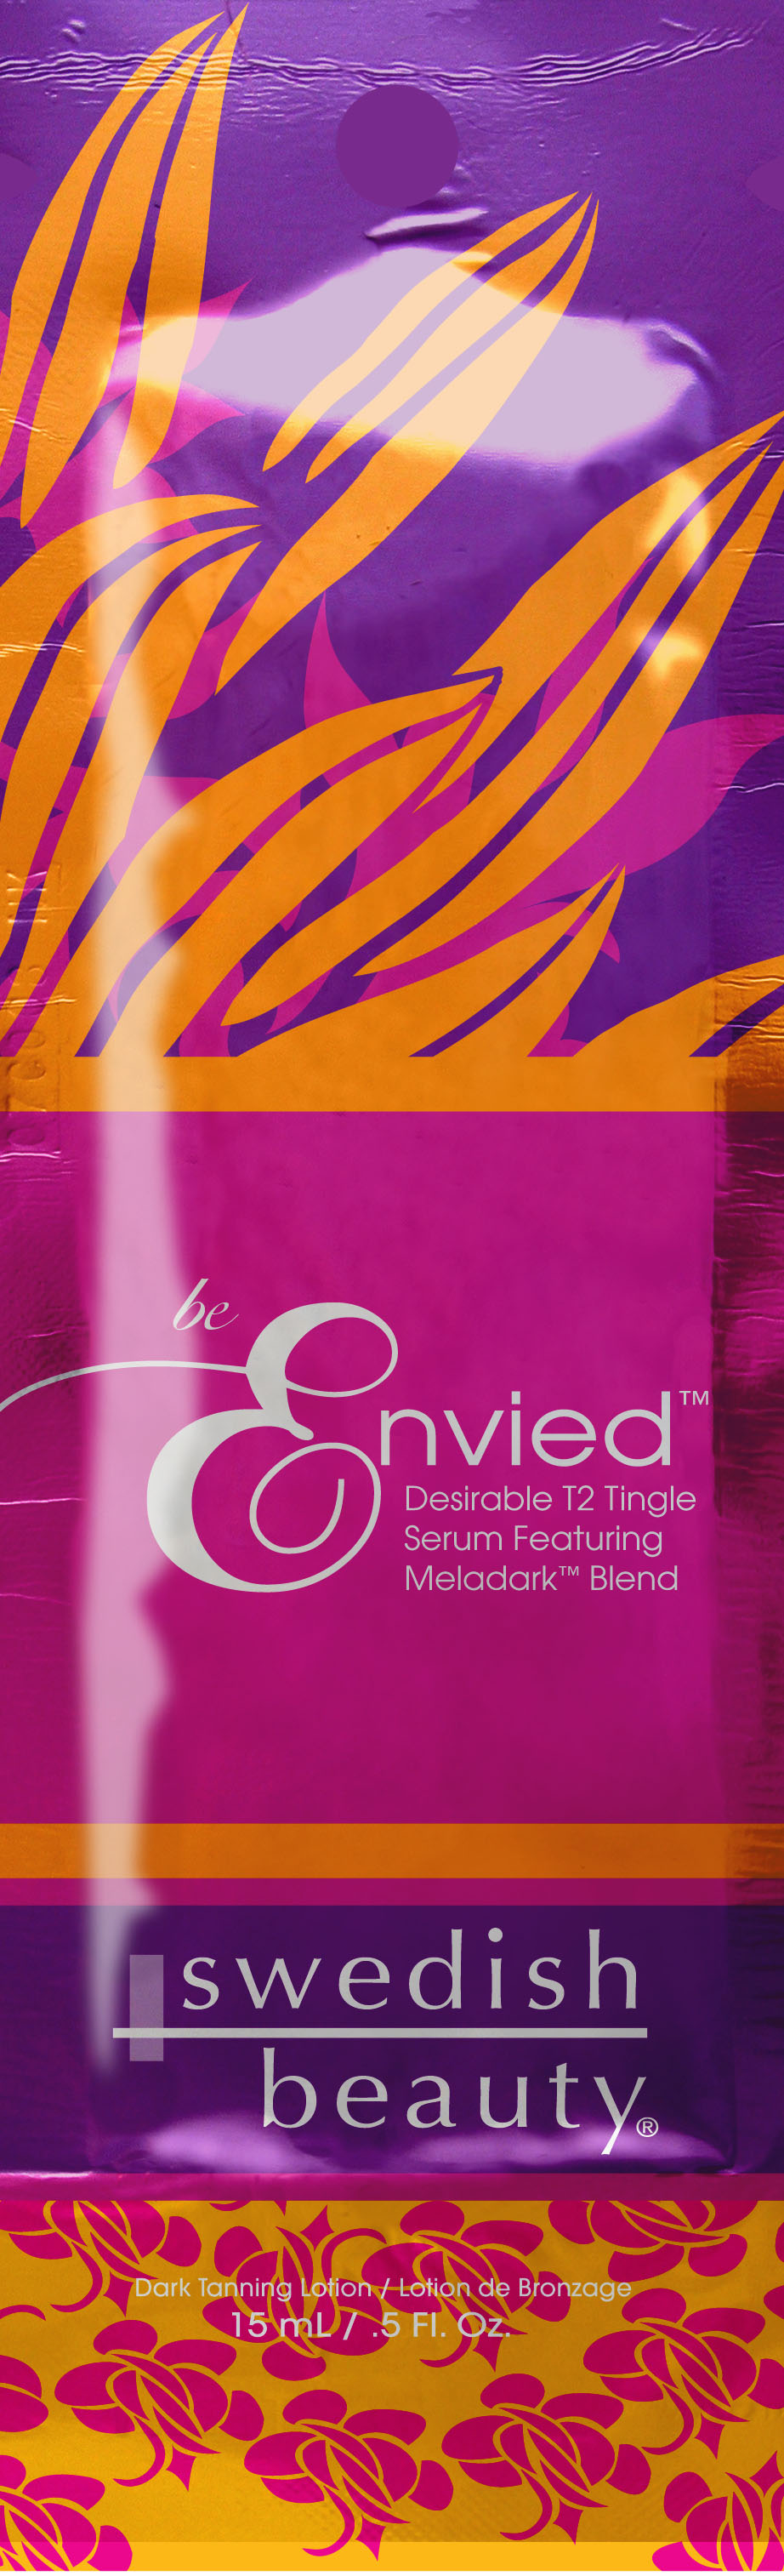 Be Envied™ Desirable Bronzing Serum with T2 Skin Awakening™ Tingle Technology Pkt